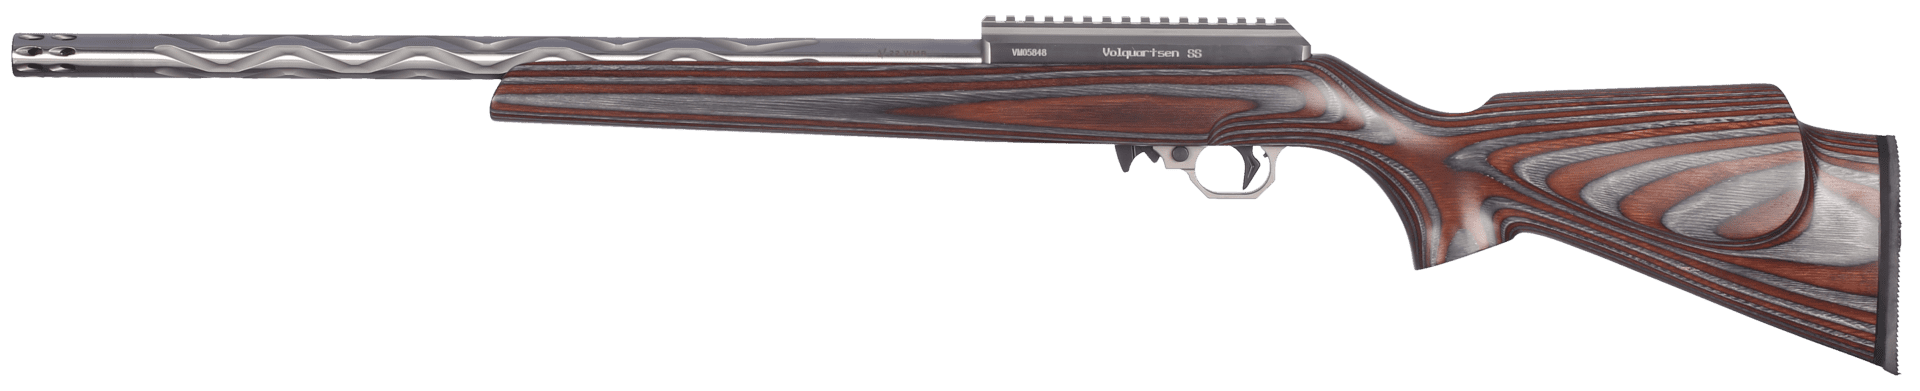 1135-sf_1 with brown_gray sporter stock